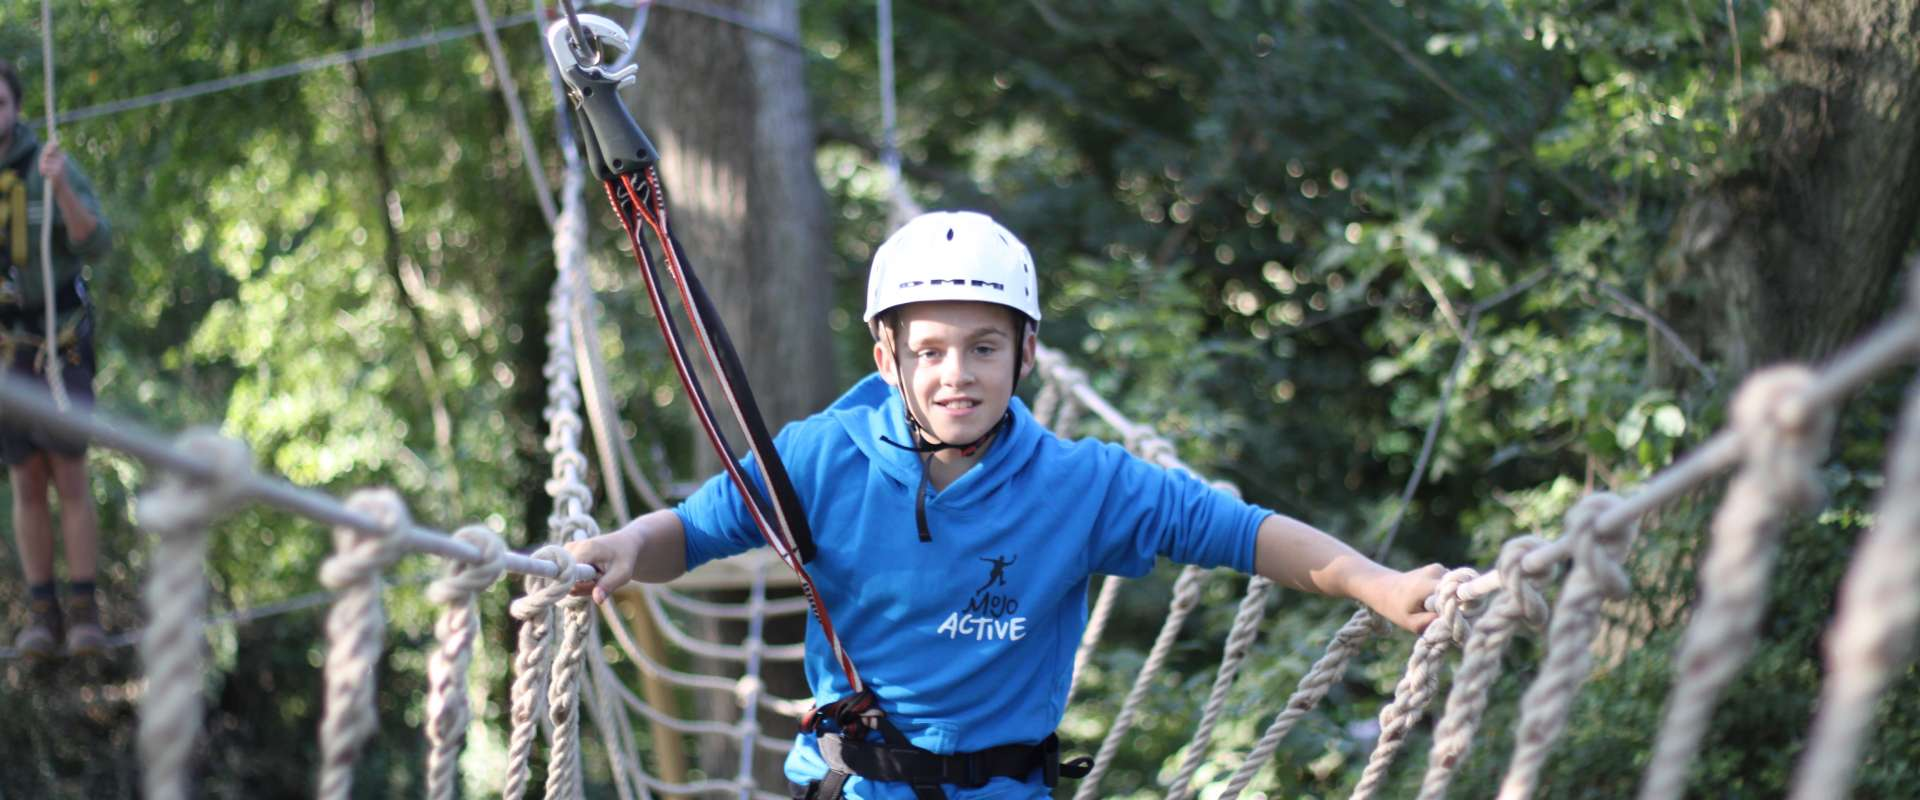 mojo active high ropes